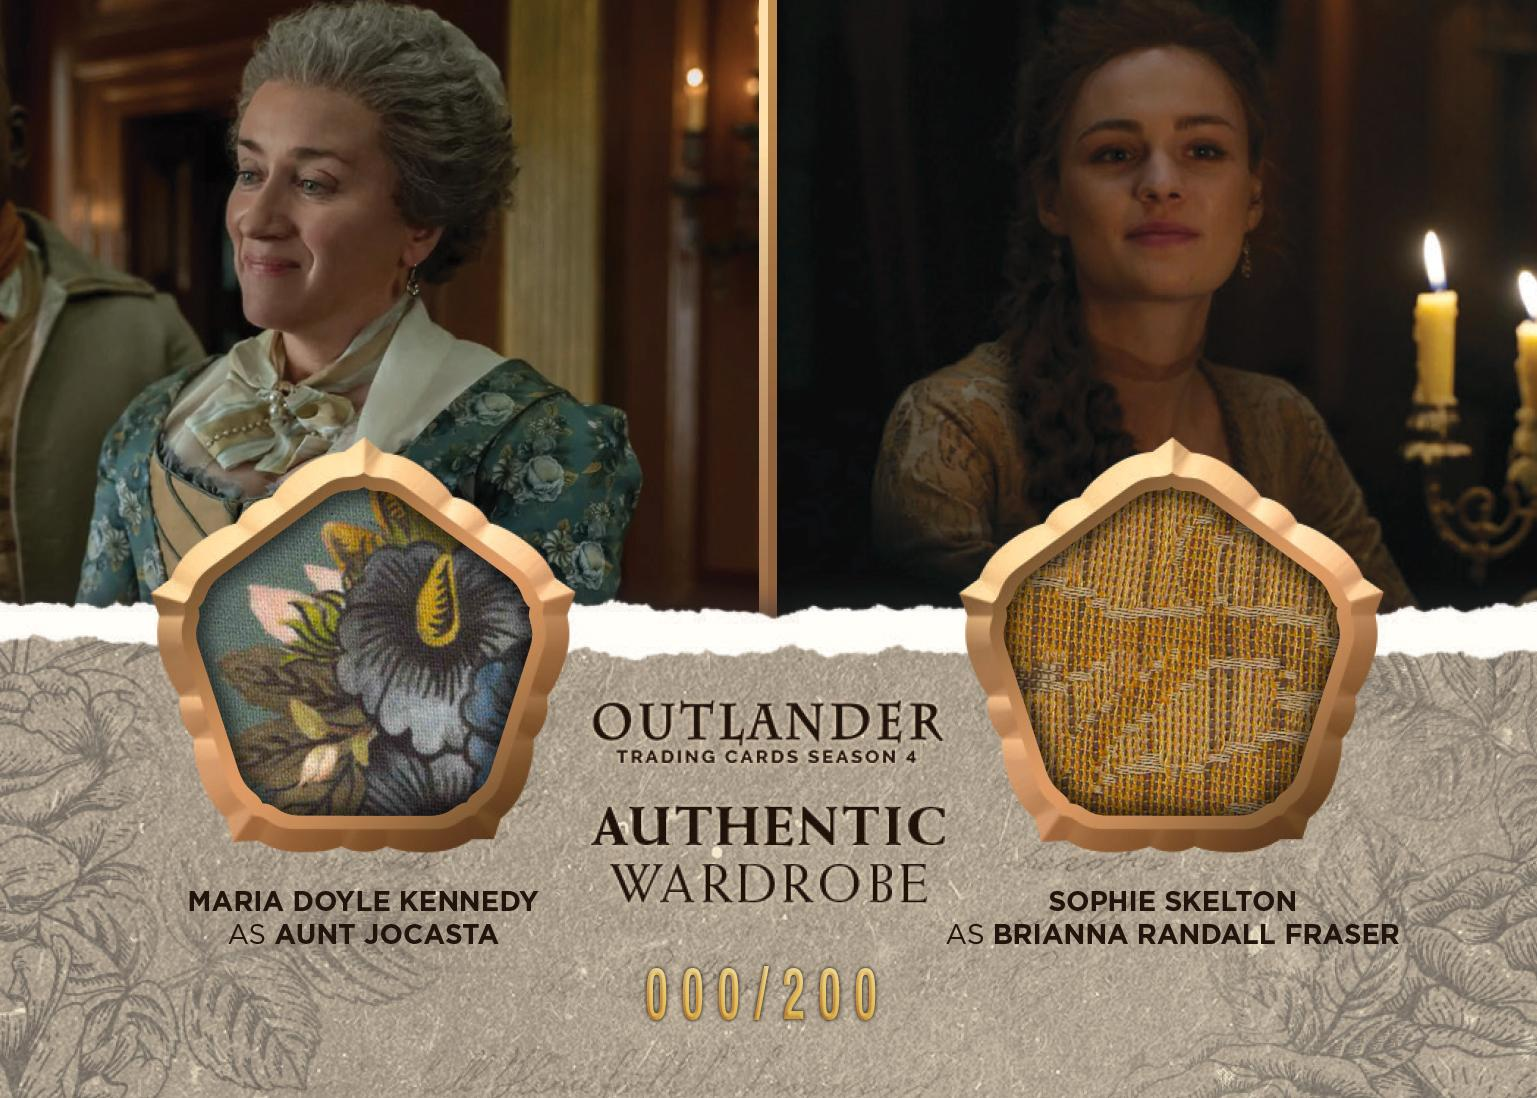 Outlander Trading Cards Season 4: Convention Wardrobe Cards CE4